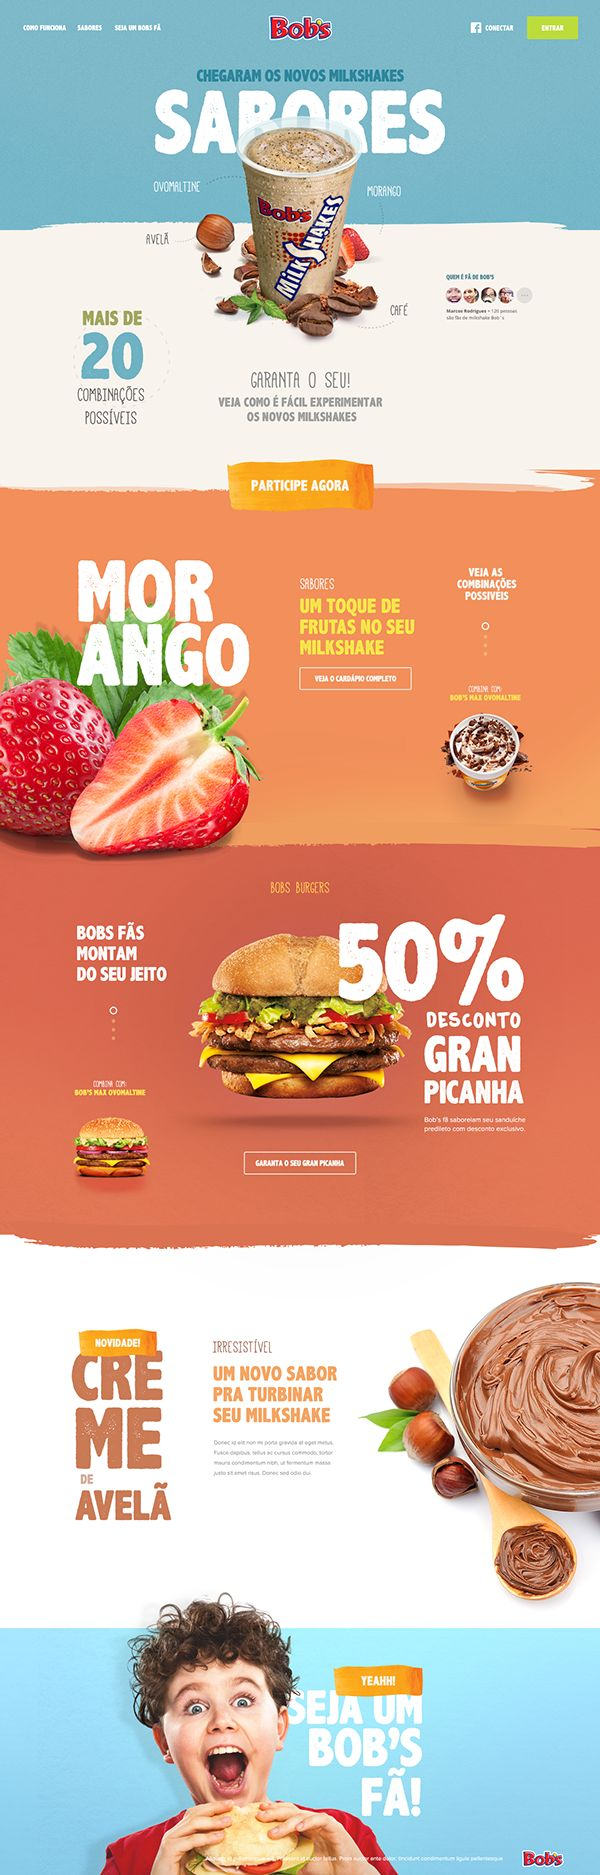 I love these bold colors and flat design used for this restaurant website layout #web #design